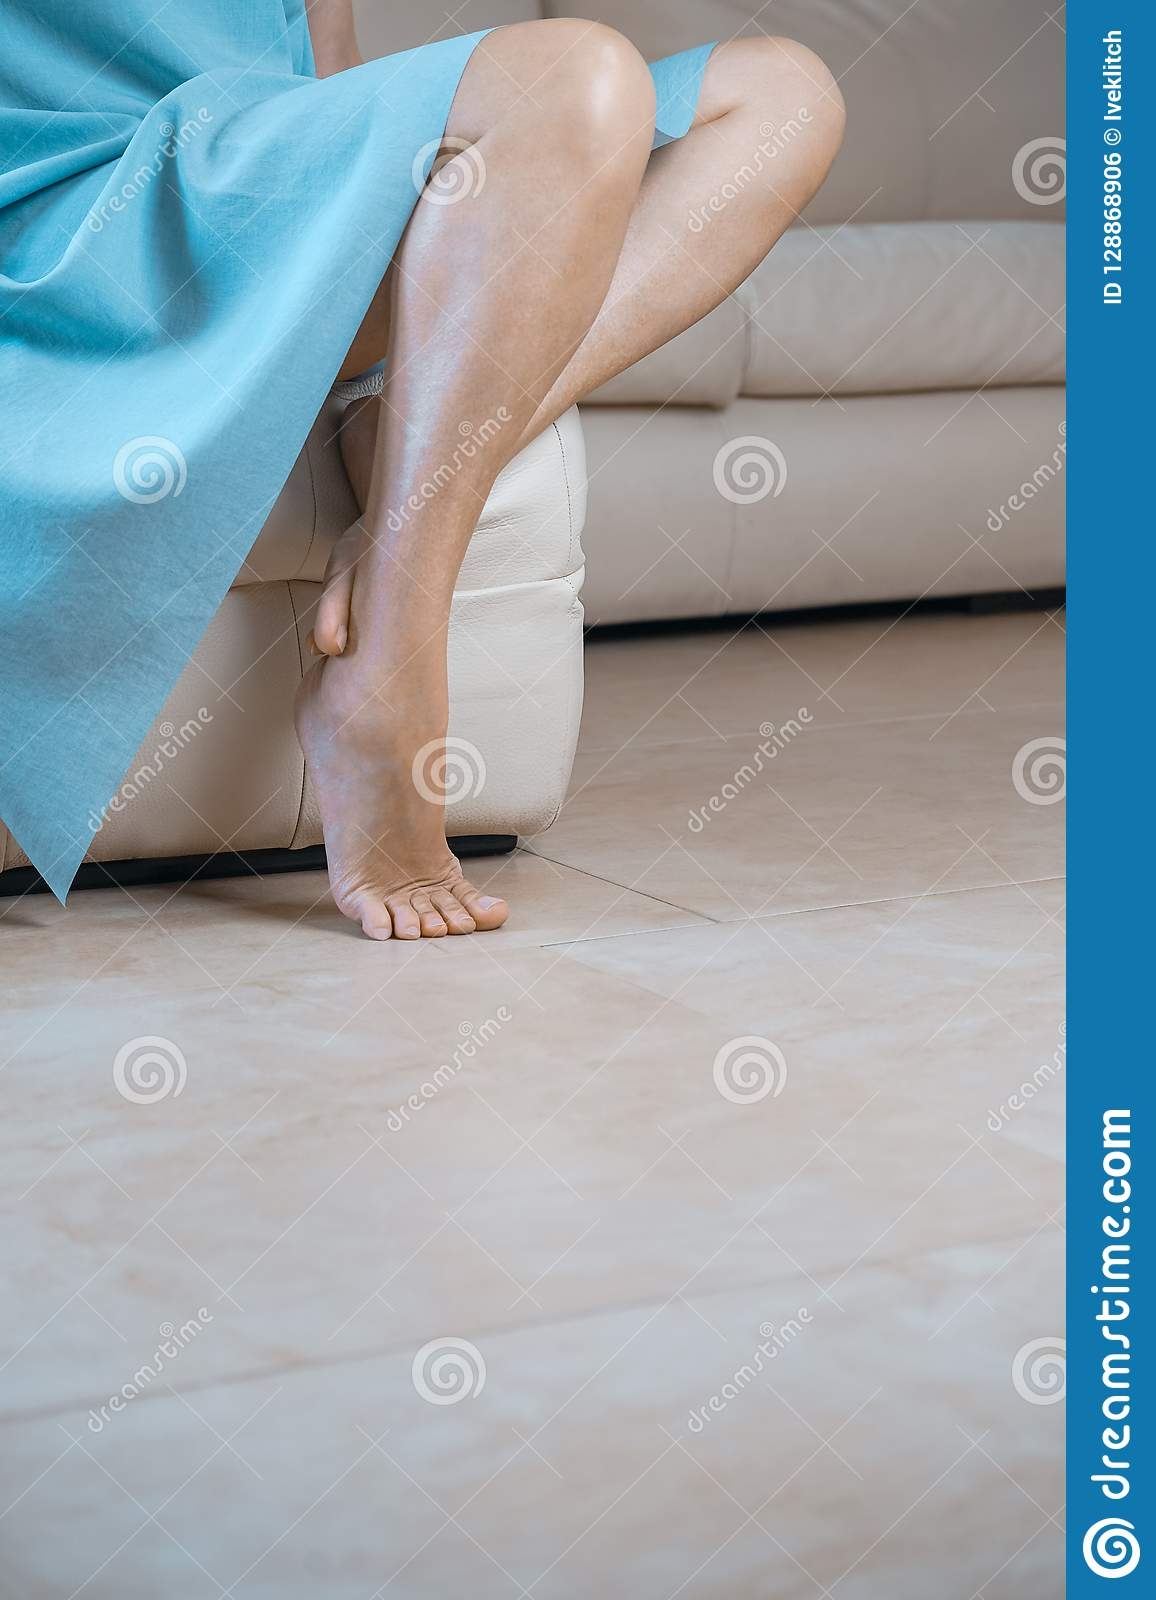 5dc46e0dd0e Cropped side view portrait of woman`s perfect thin slim legs and blue mint  dress. Lady sitting on beige chair having ideal legs. Feet care tights  pedicure ...